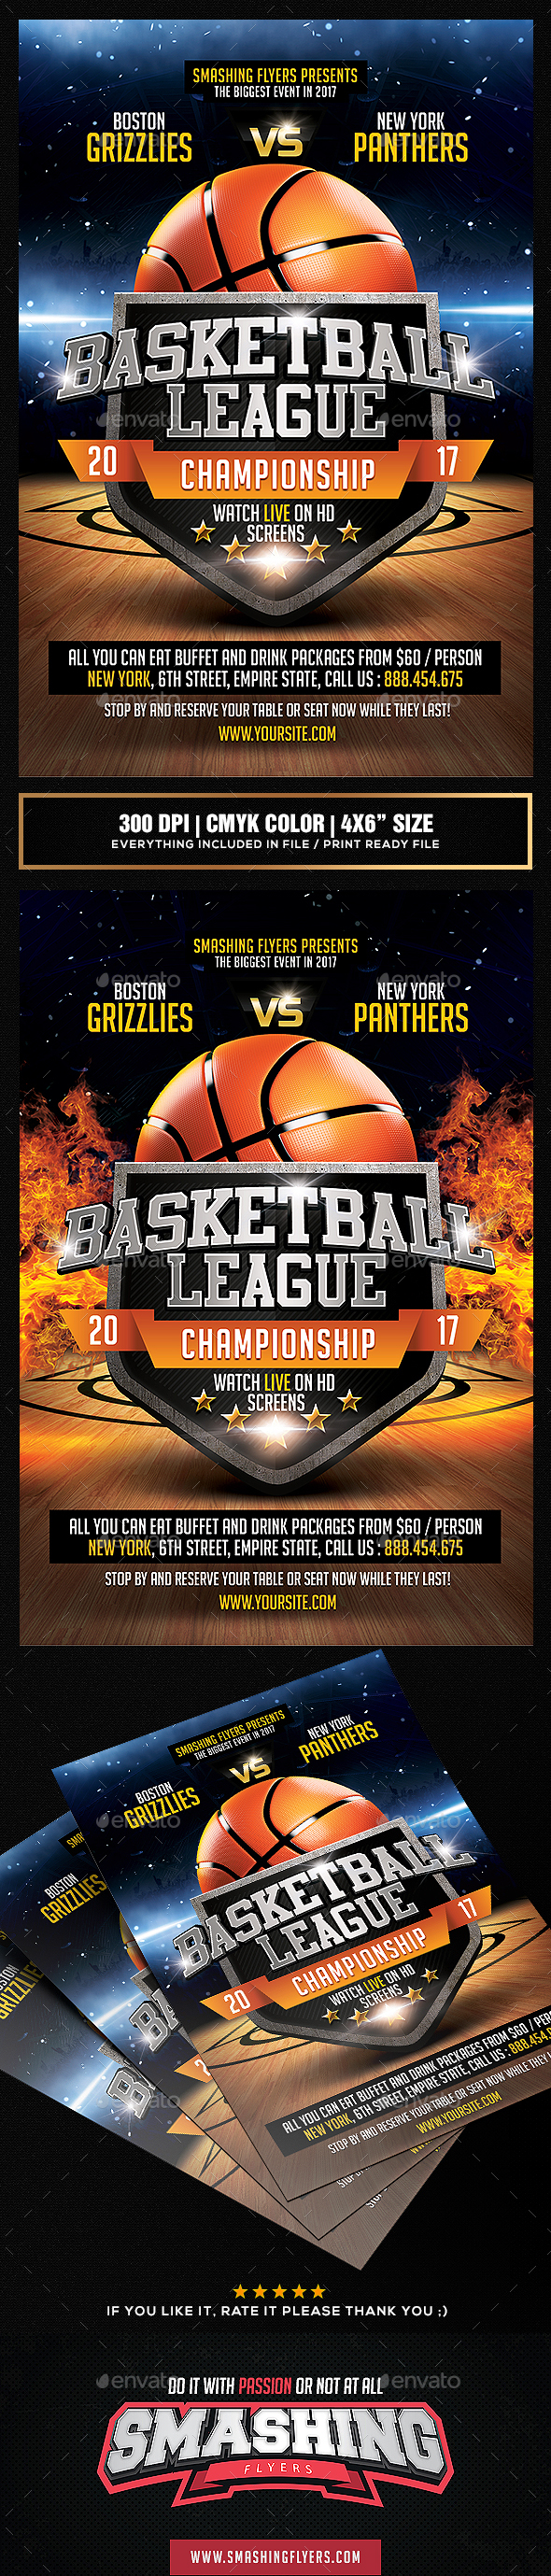 Basketball League Flyer Template